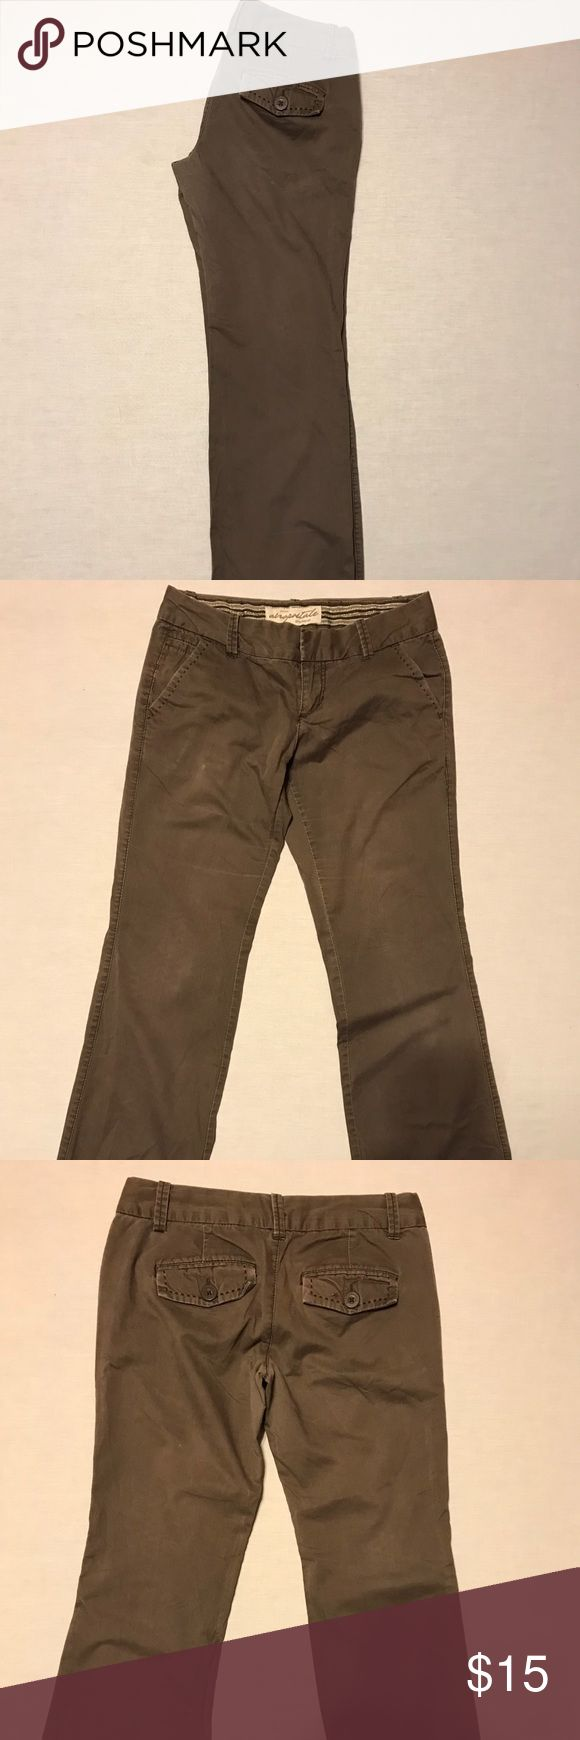 """Aeropostale cotton brown pants 3/4 Up for sale today is a nice pair of ladies brown Aeropostale pants. Their 100% cotton. Their a size 3/4 regular. They have a 32"""" waist and 38"""" hips. They have an inseam of 31.5"""". They have a double hook and zipper. There are three front pockets and two buttoned back pockets. They've been checked for rips, stains and wear. Aeropostale Pants Trousers"""